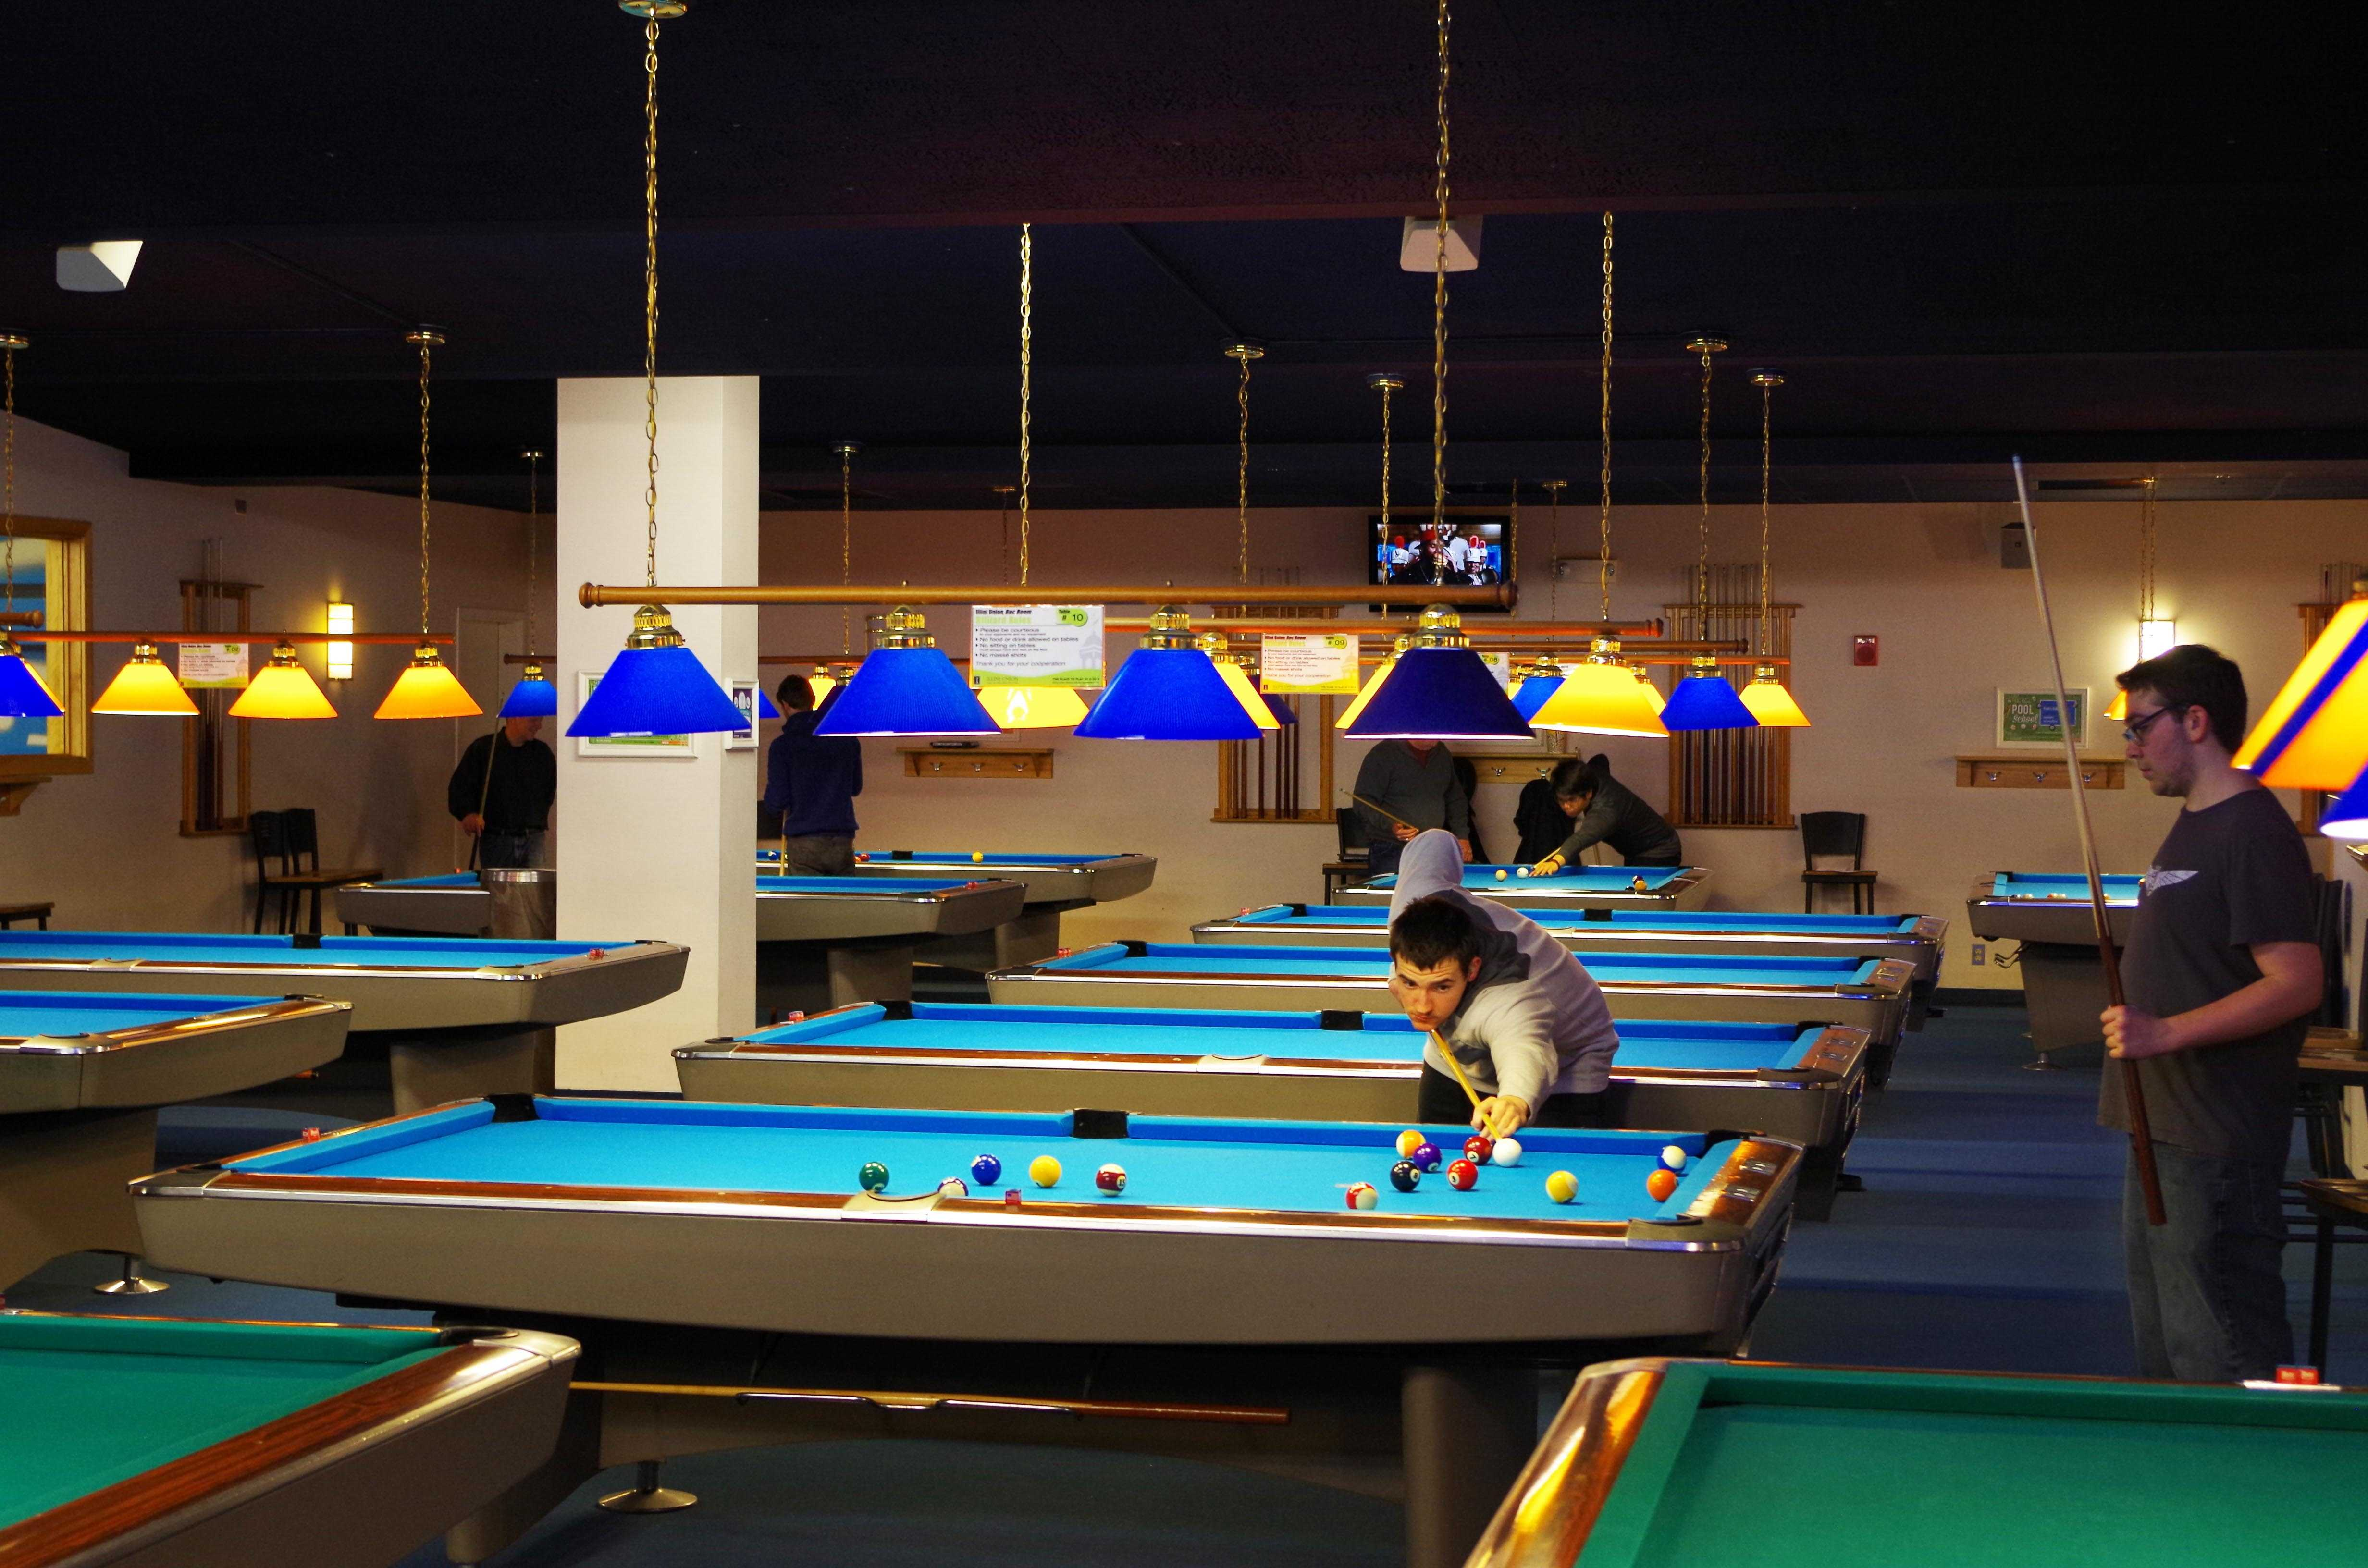 Students receive pool lessons in the Rec Room in the Illini Union every Monday night for 7 weeks for $50.